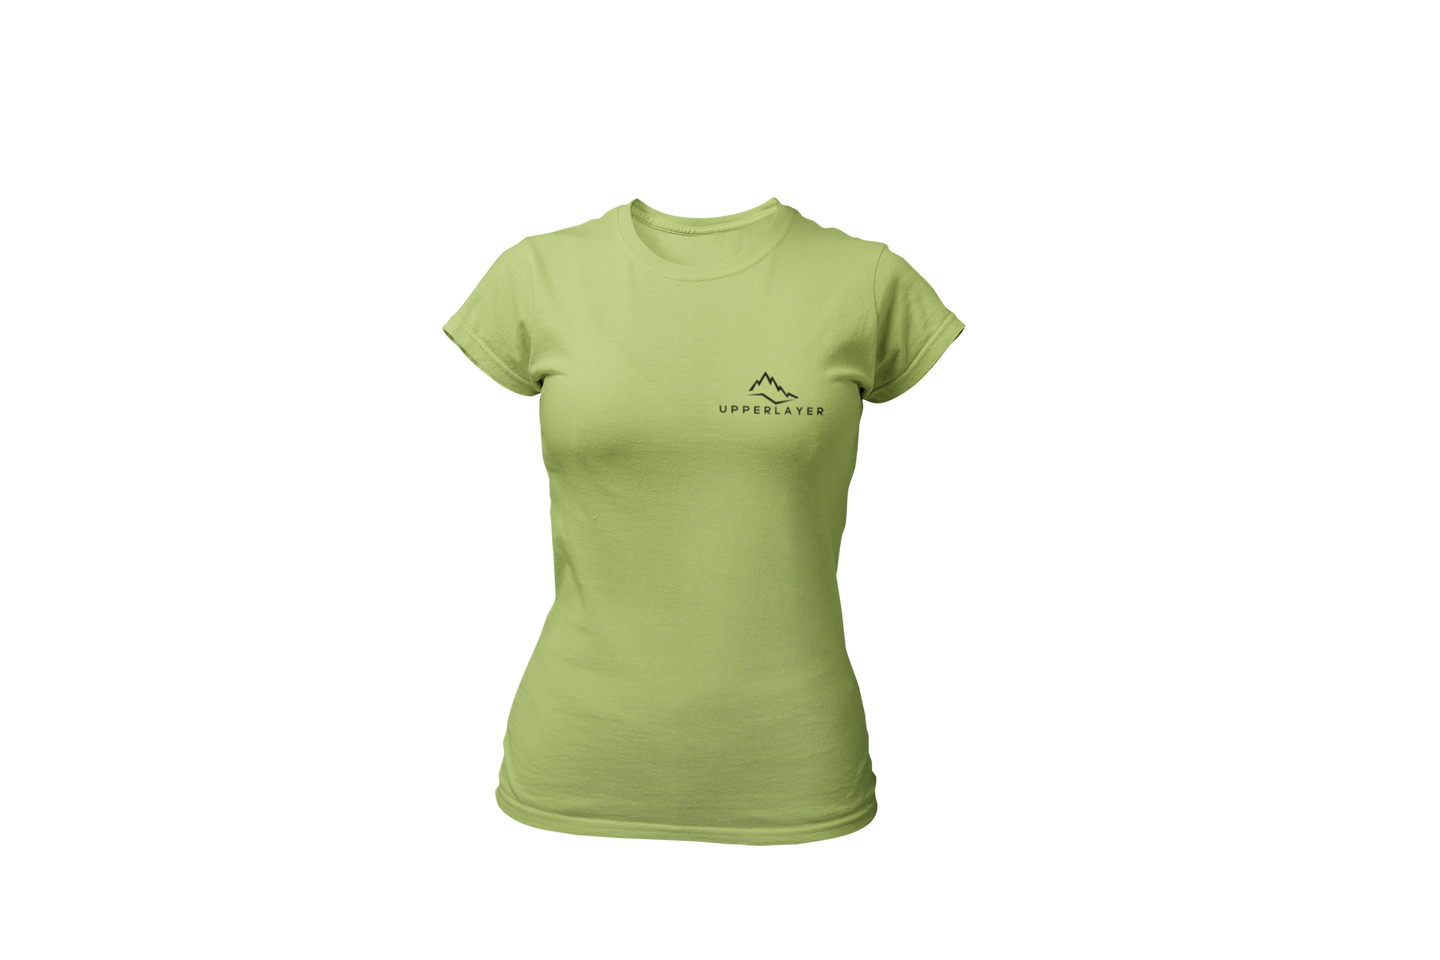 Upperlayer Womens Softstyle Green tshirt with small black logo - upperlayer-clothing.myshopify.com